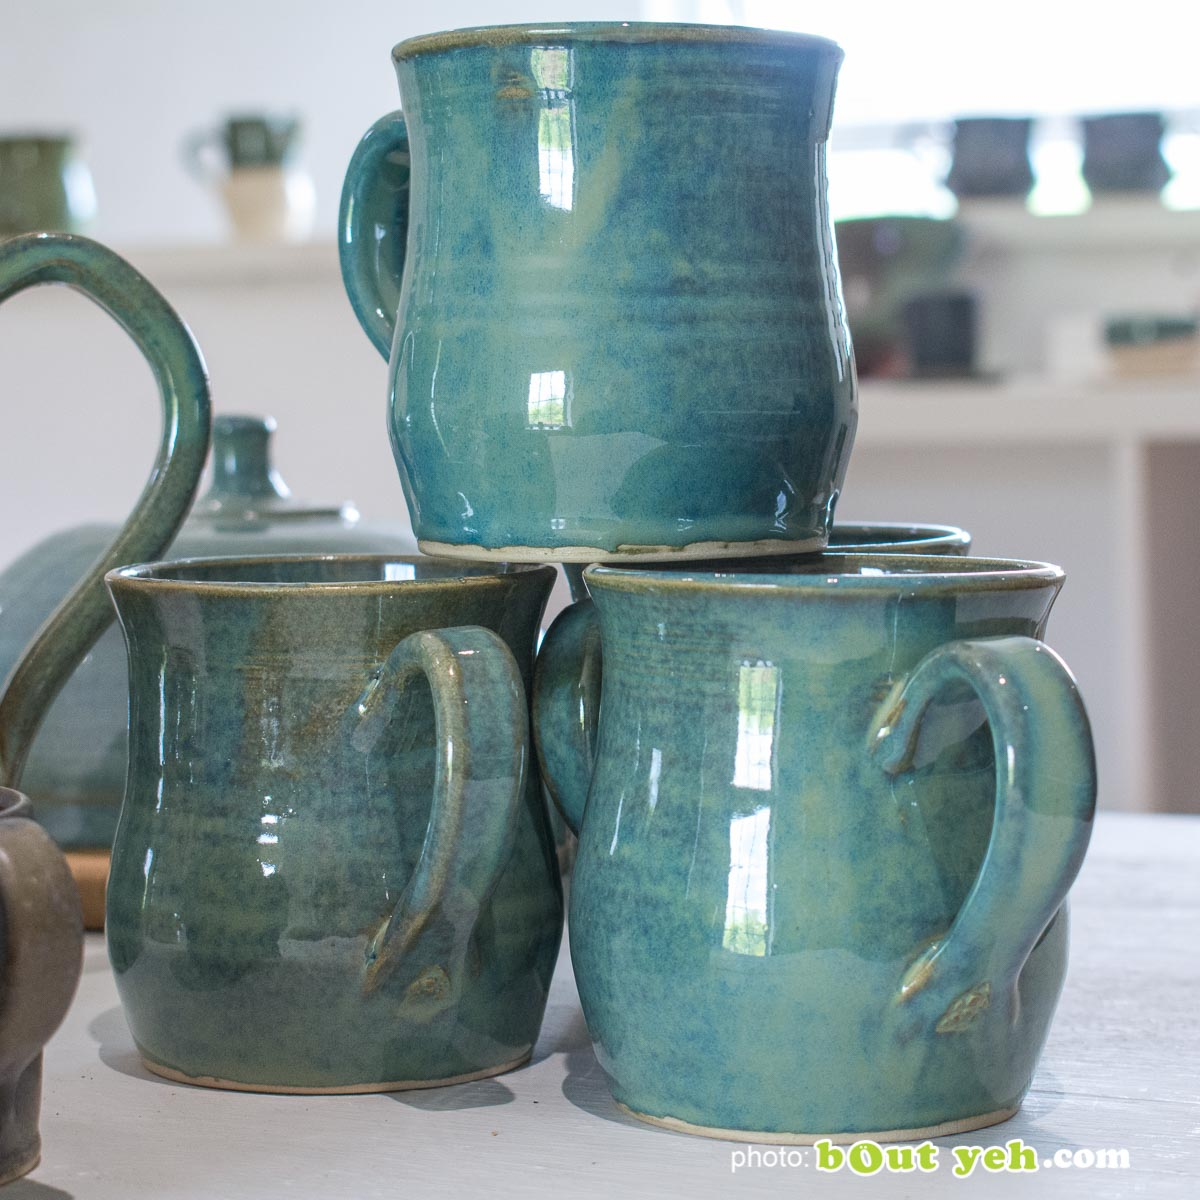 Contemporary hand made Irish pottery - tiffany blue and green curve-sided mug from Bout Yeh arts and crafts gallery Belfast and Dublin. Photo 1463